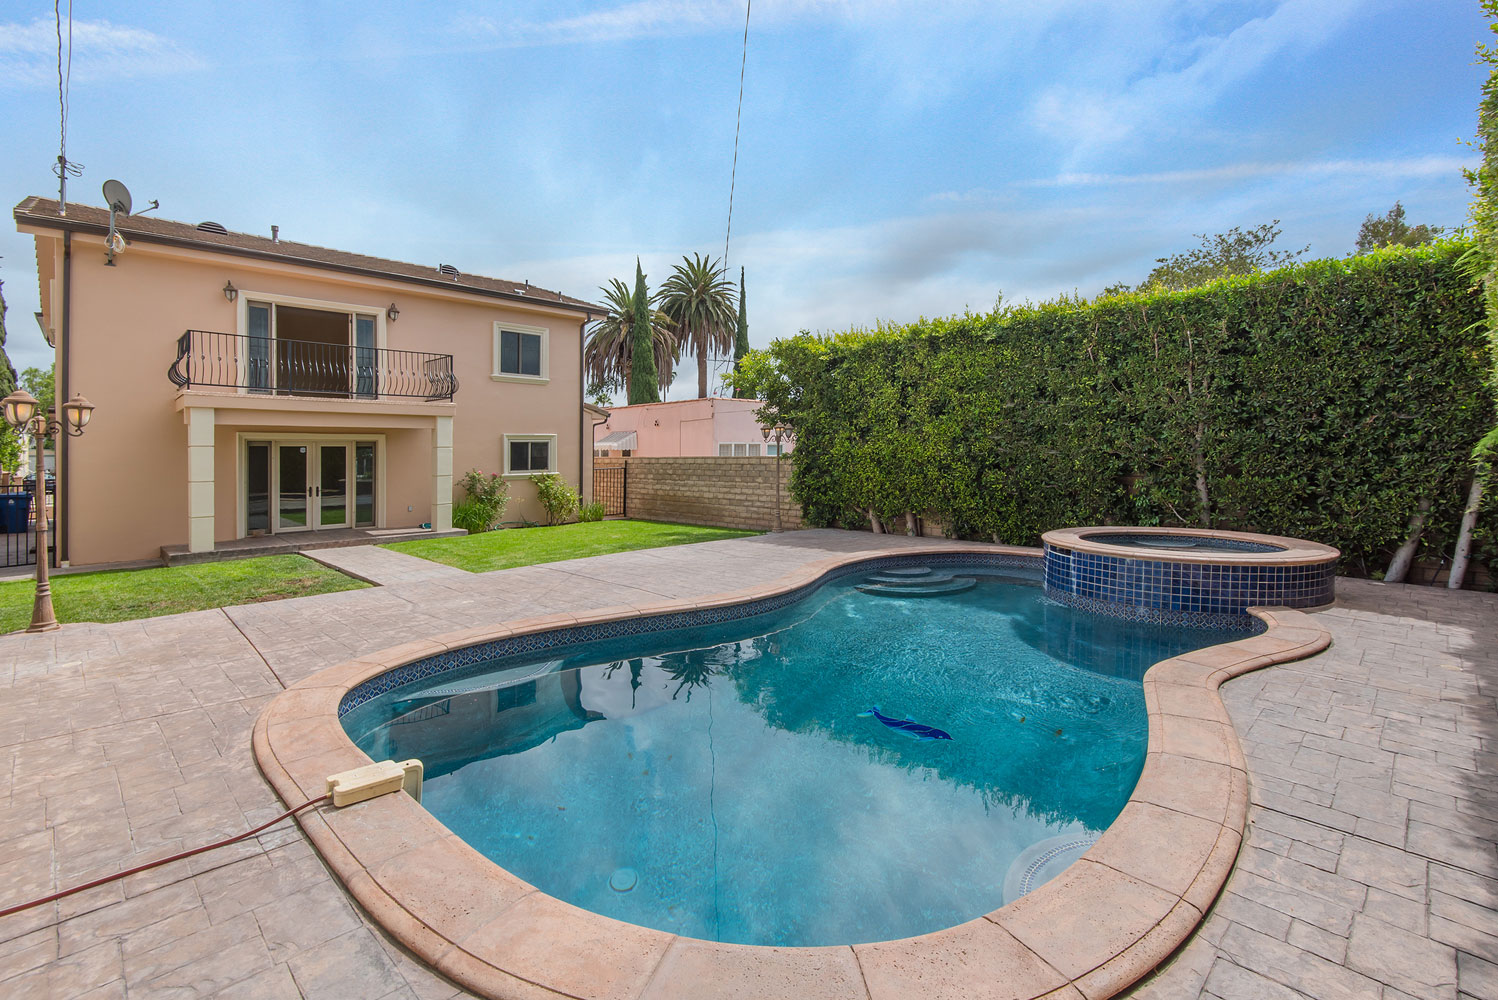 Pool to house view.jpg